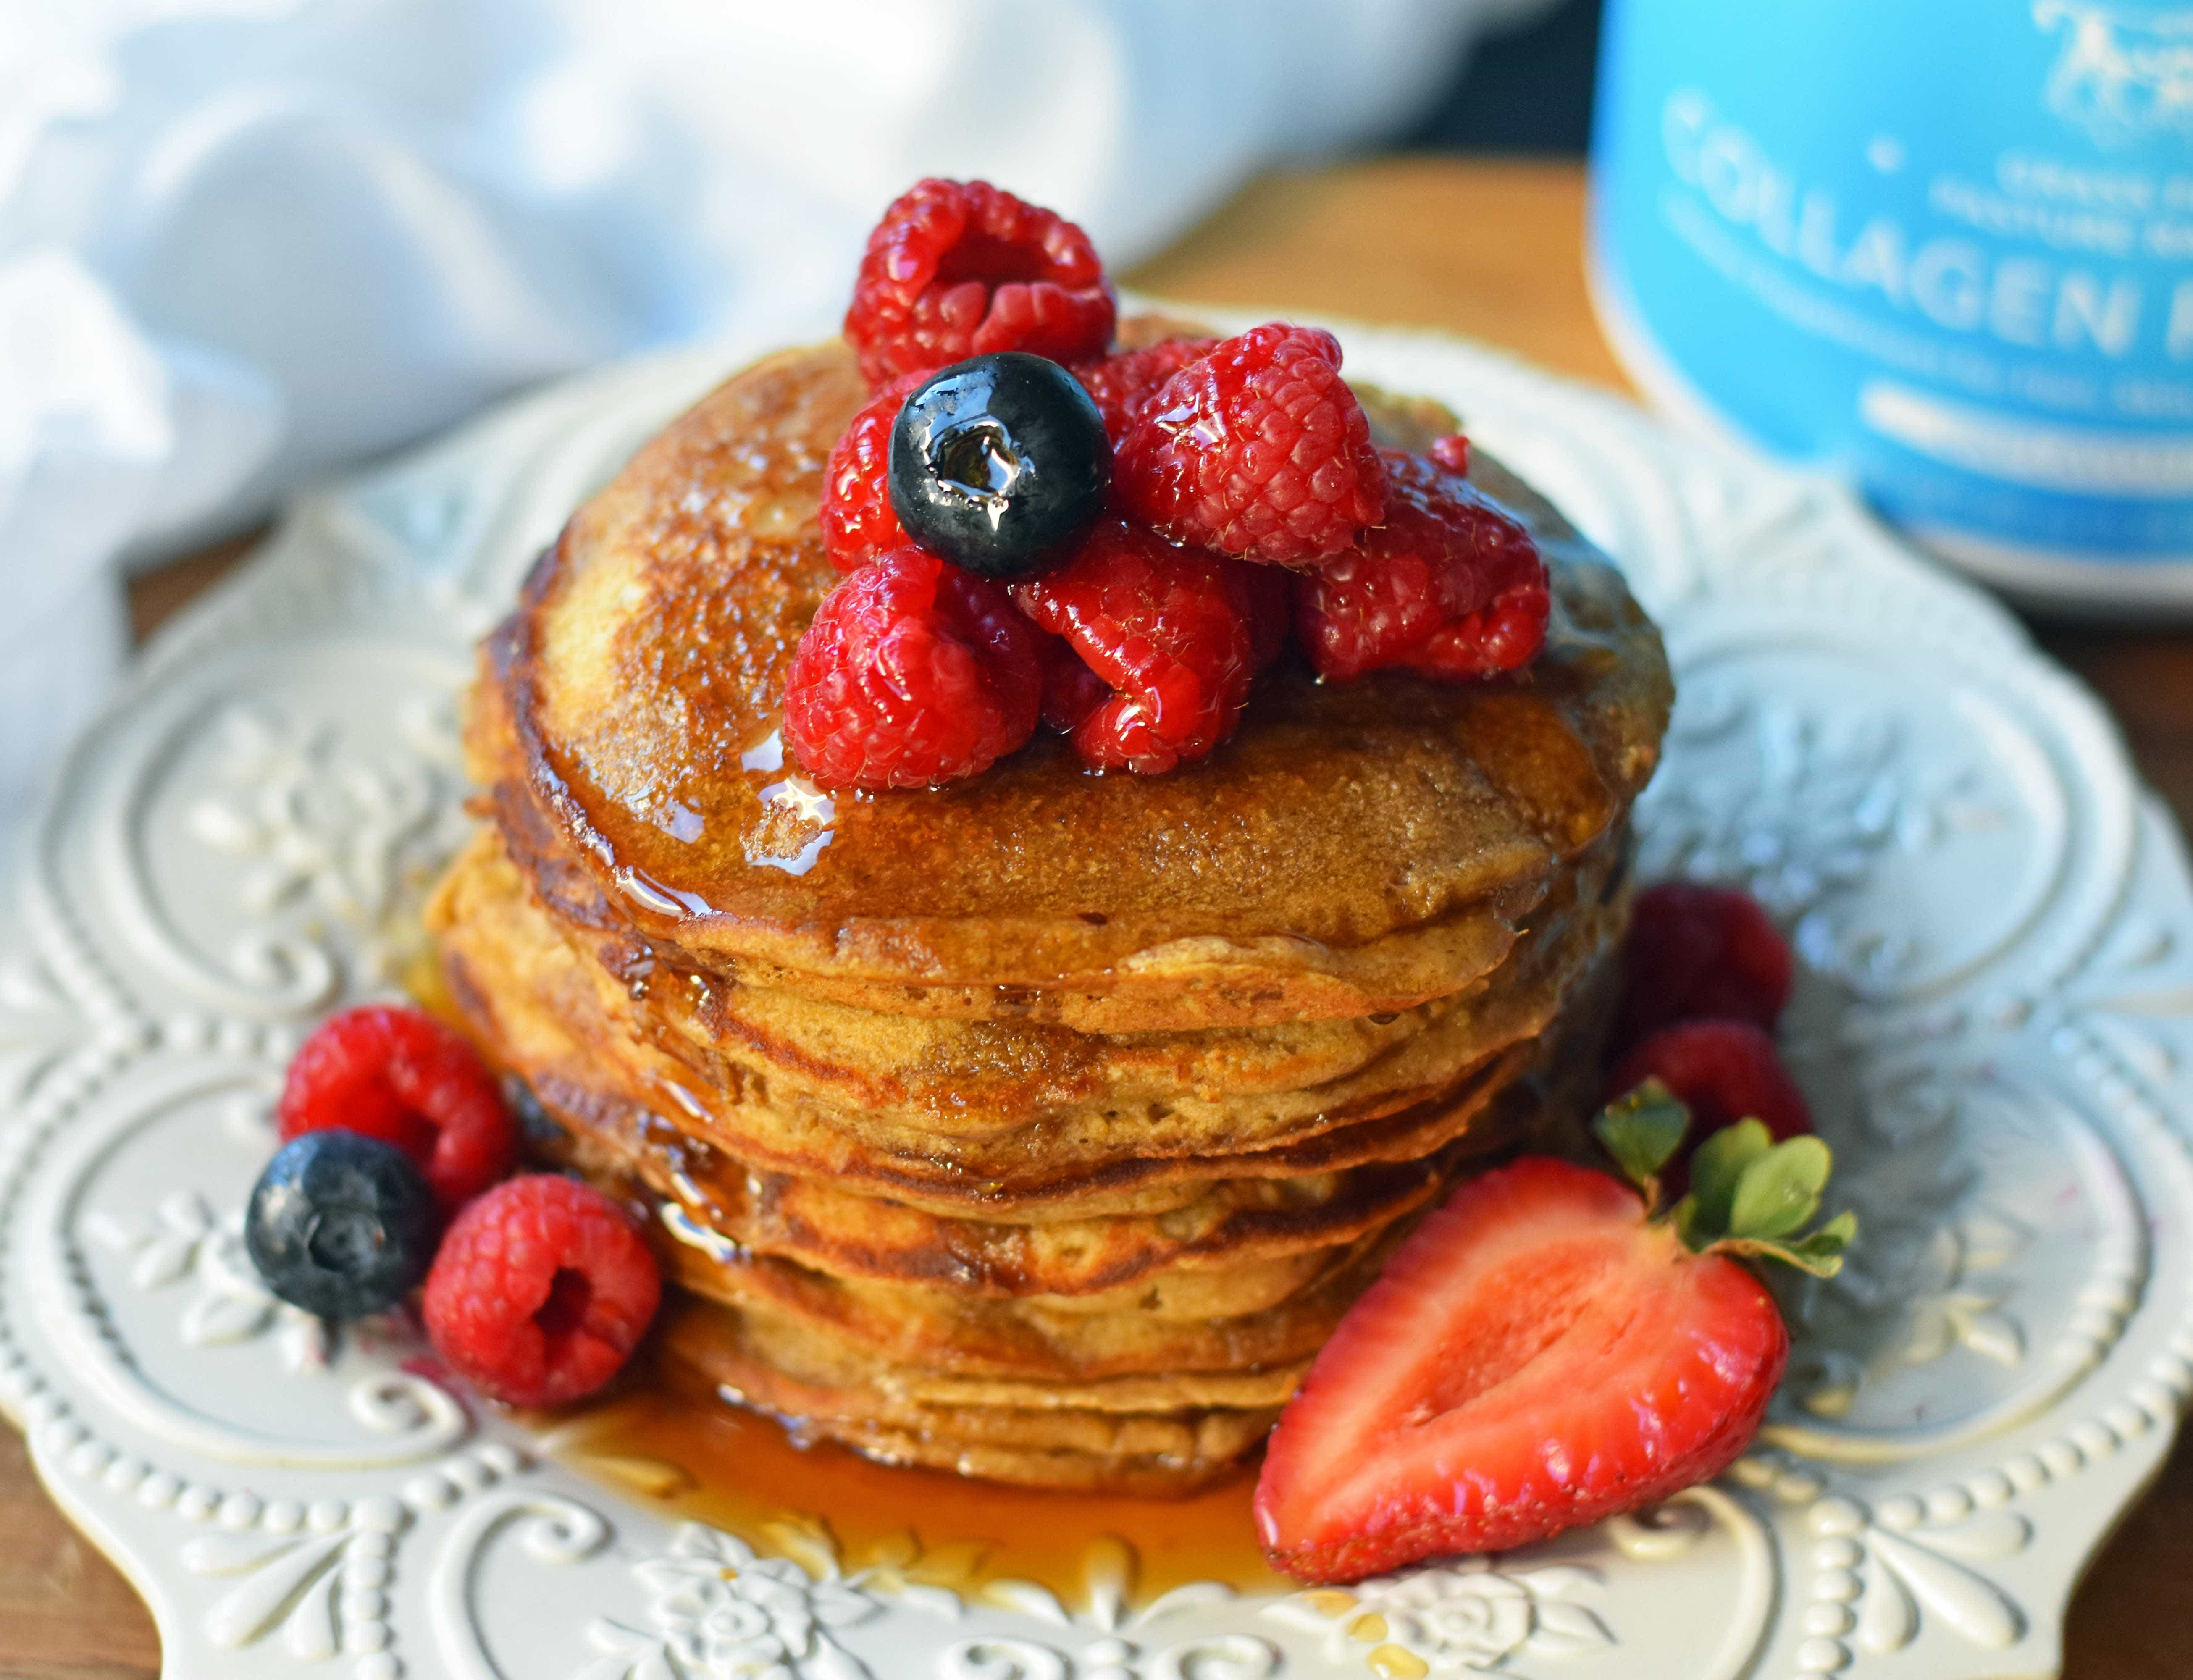 Protein Pancakes Recipe. How to make healthy protein pancakes with collagen. Protein banana pancakes are gluten-free and dairy-free. Gluten-free protein pancakes are so delicious and healthy! www.modernhoney.com